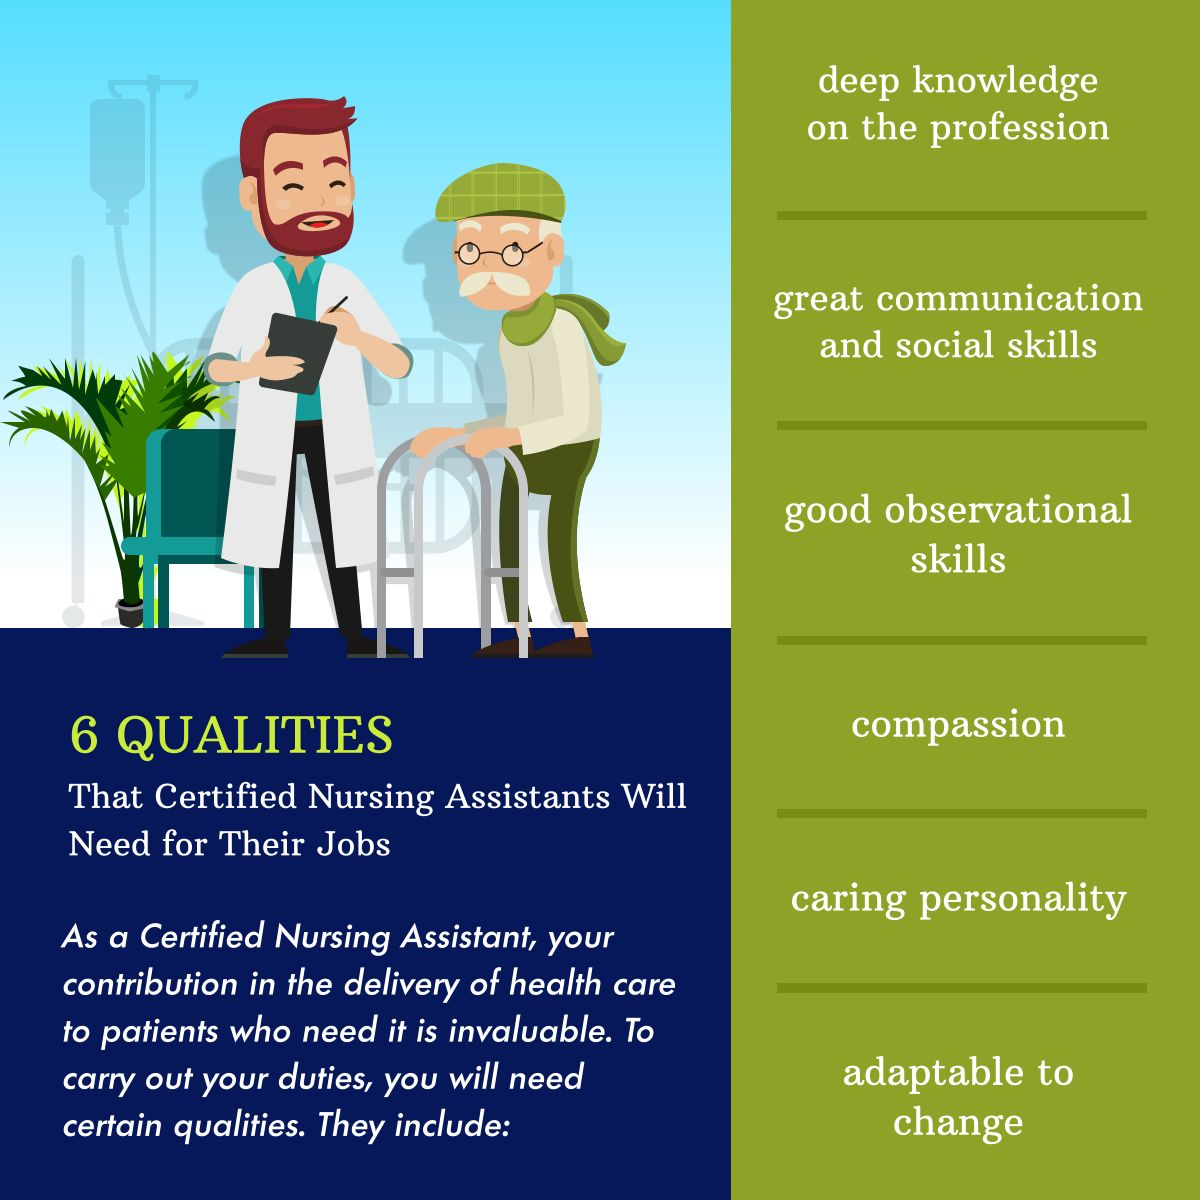 6 qualities that certified nursing assistants will need